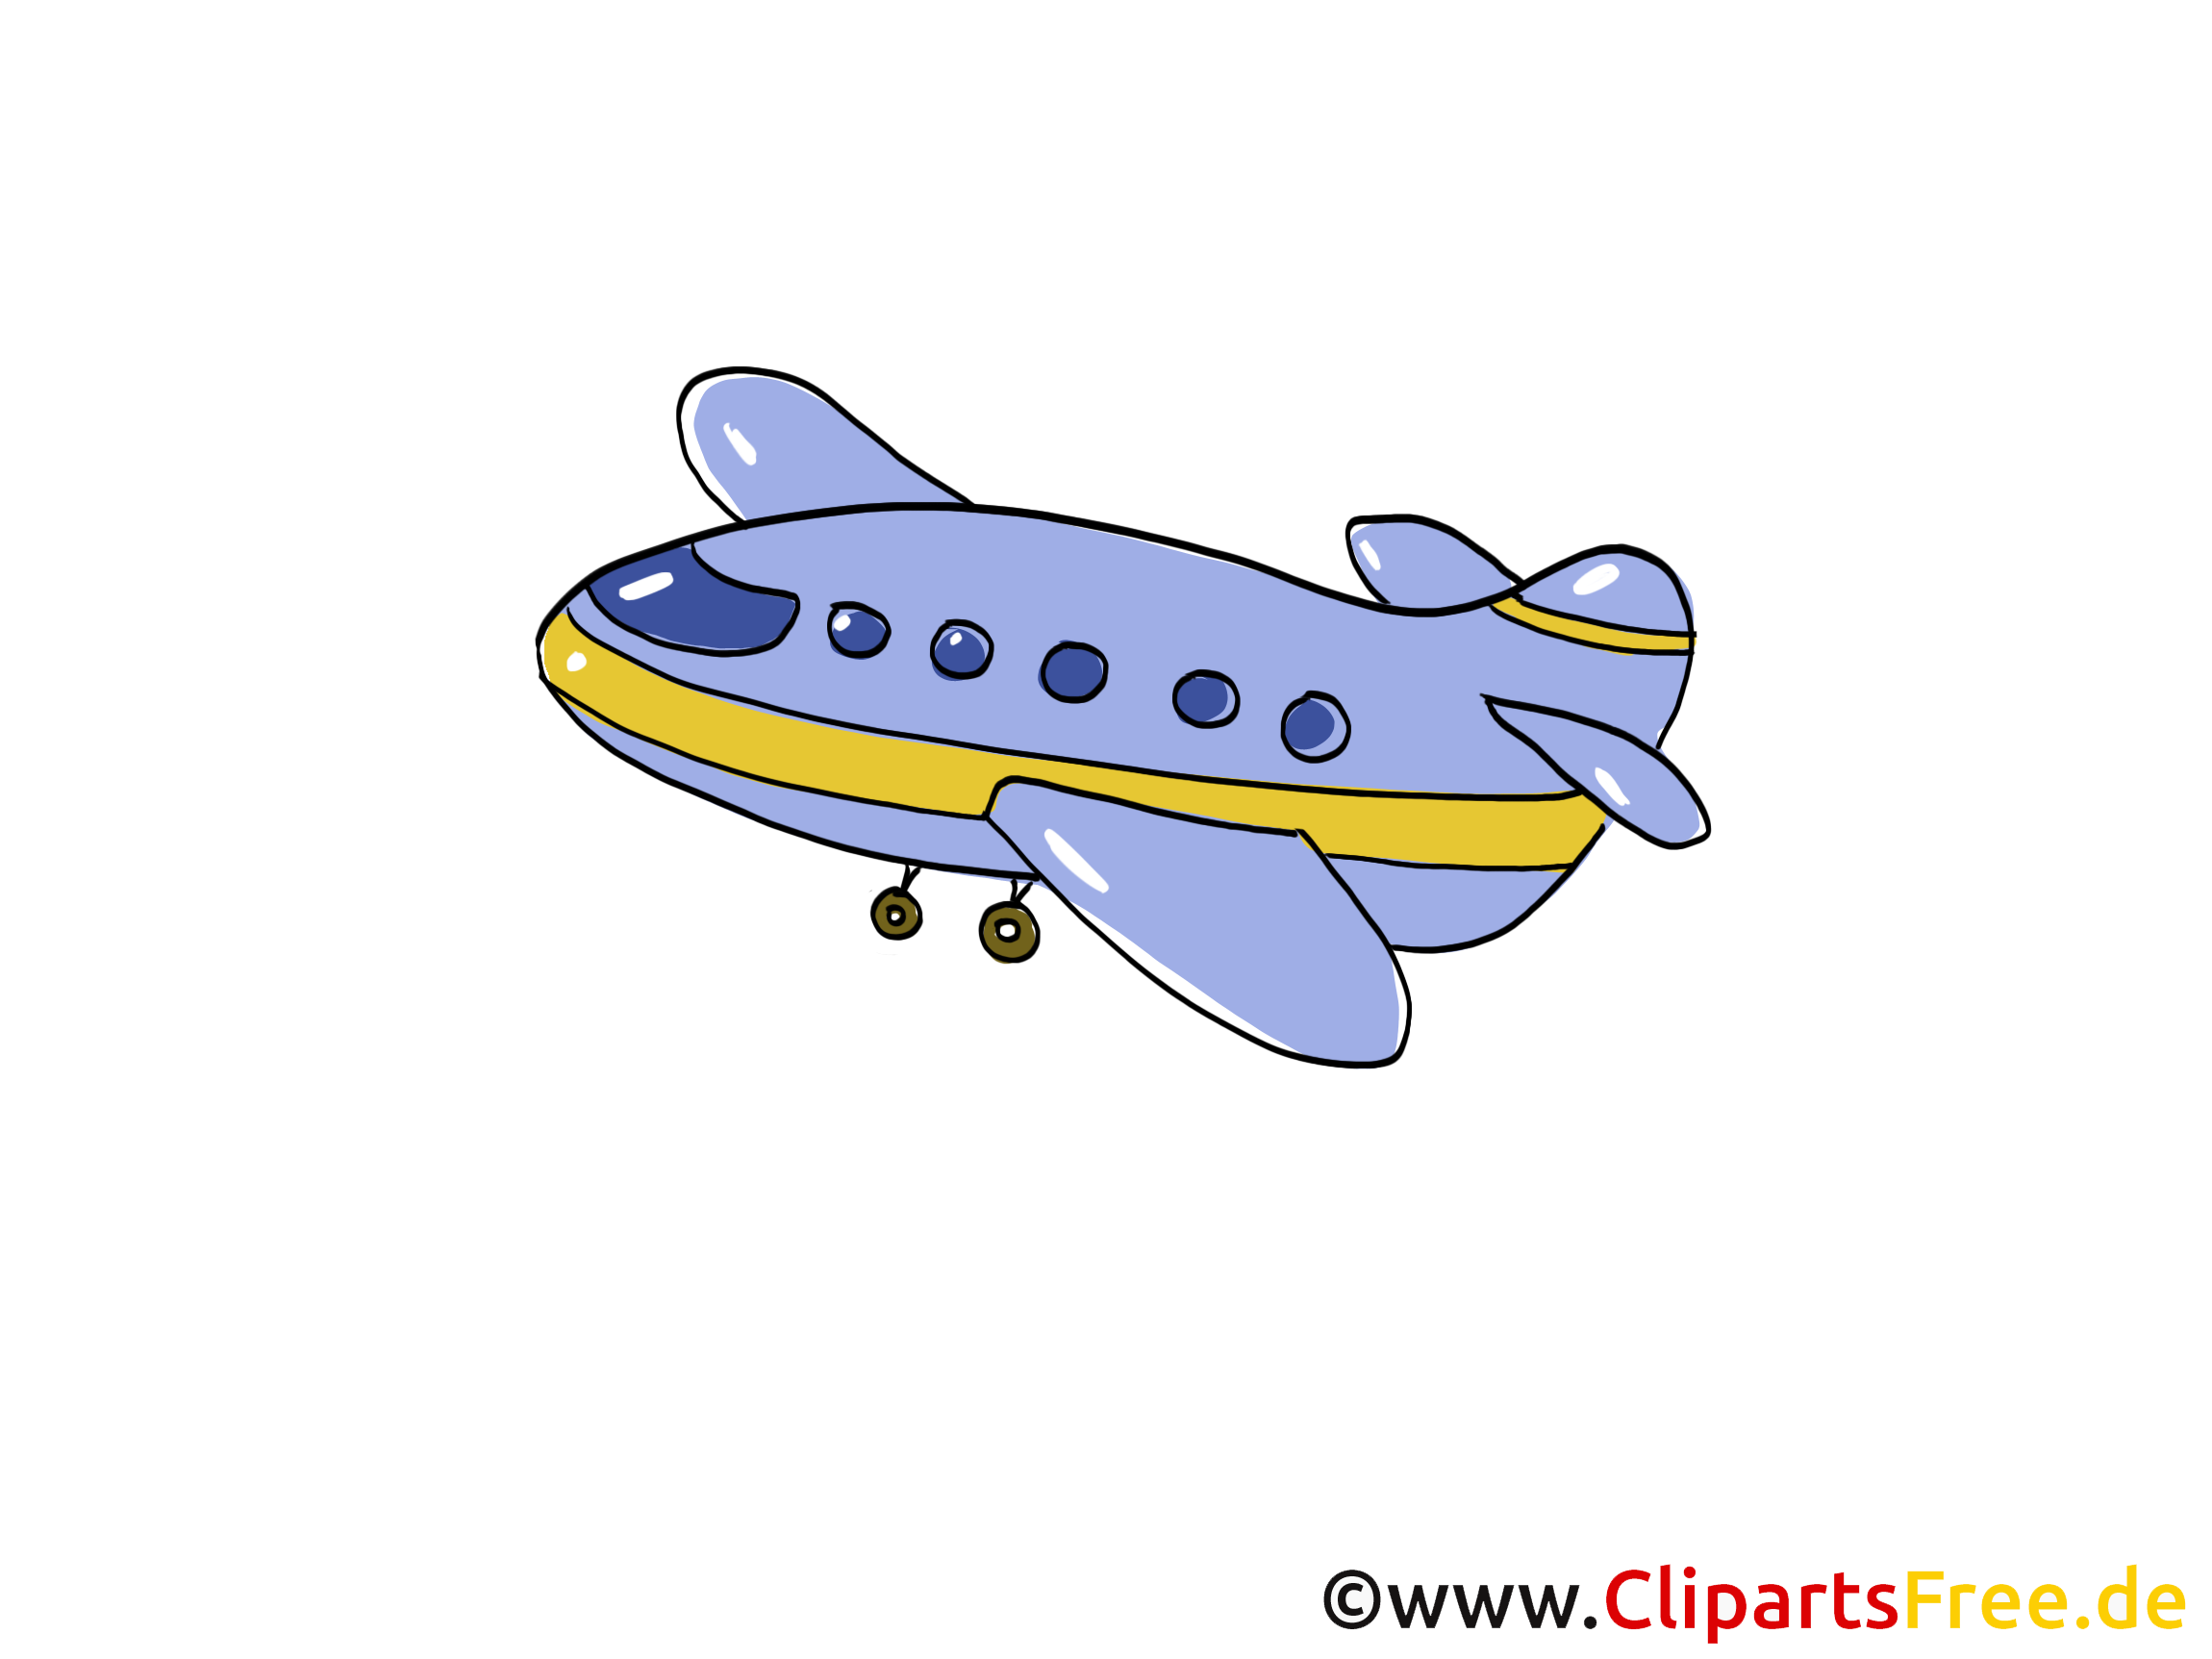 cartoons about flying a plane with Flugzeug  Jet Clipart  Bild  Cartoon   Ic  Grafik 8280 on Paper Zi3AHZwyDyNj2 likewise Free Powerpoint Template Mainstream Concept also Cartoon baby boy furthermore Eva Airs Hello Kitty Plane  es Europe besides Crashing Plane.